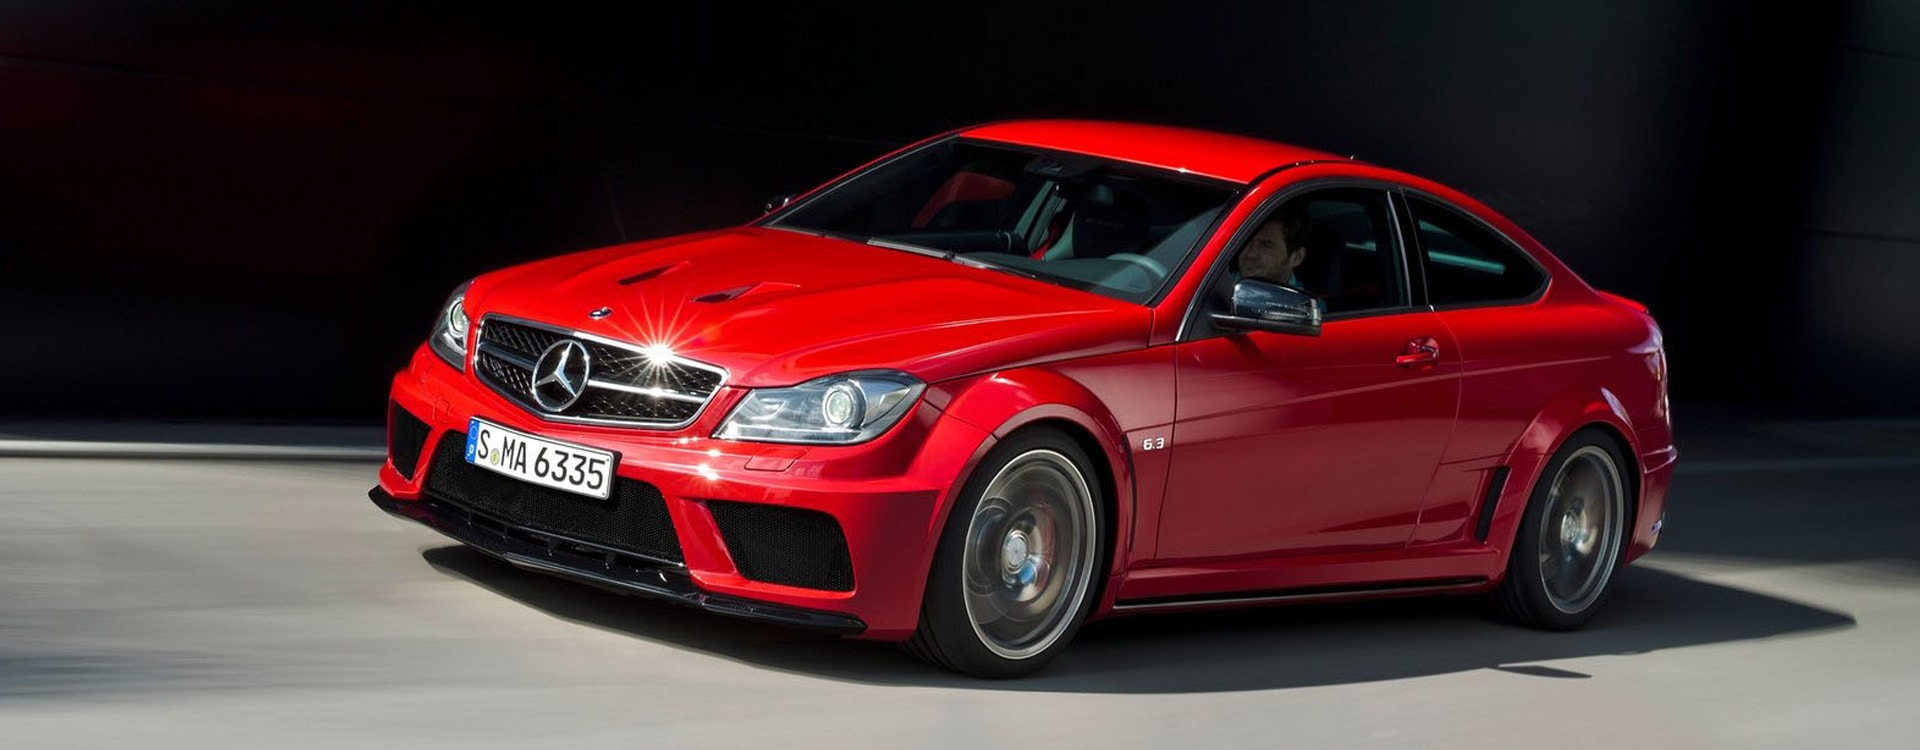 ultimate-car-rentals-australia-c63-amg-coupe-red-back